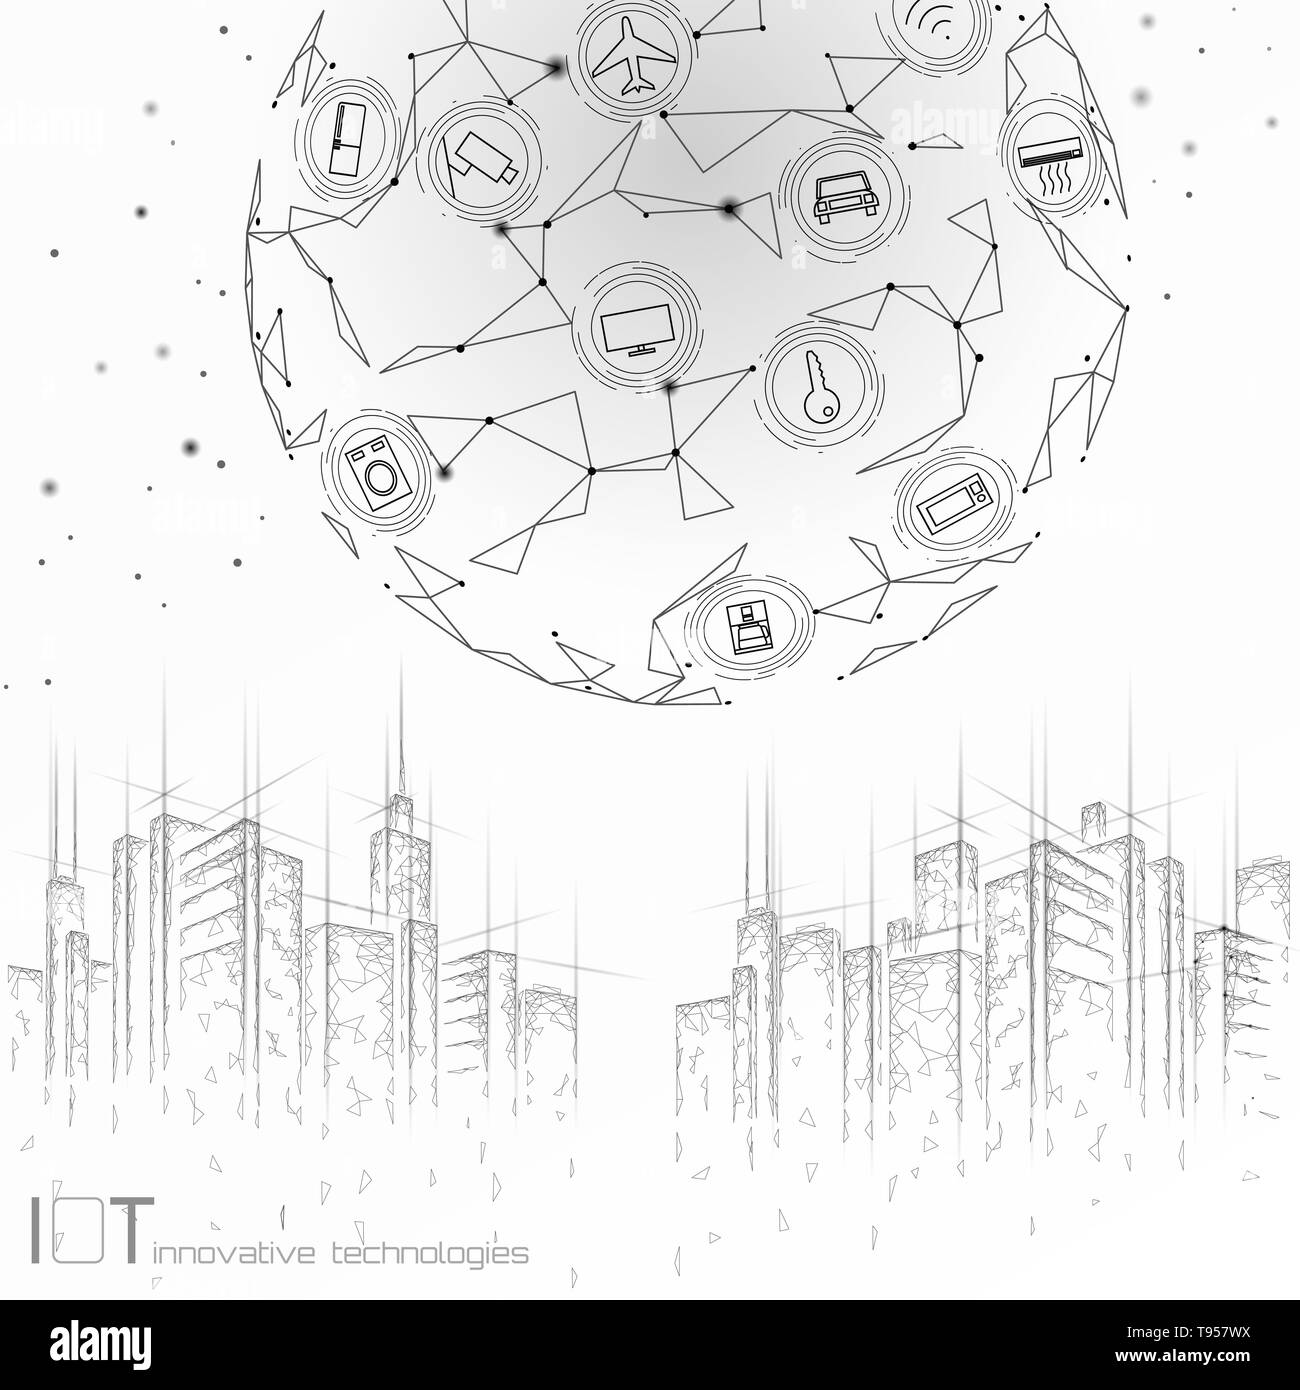 Internet of things low poly smart city 3D wire mesh. Intelligent building automation IOT concept. Modern wireless online control icon urban cityscape - Stock Image